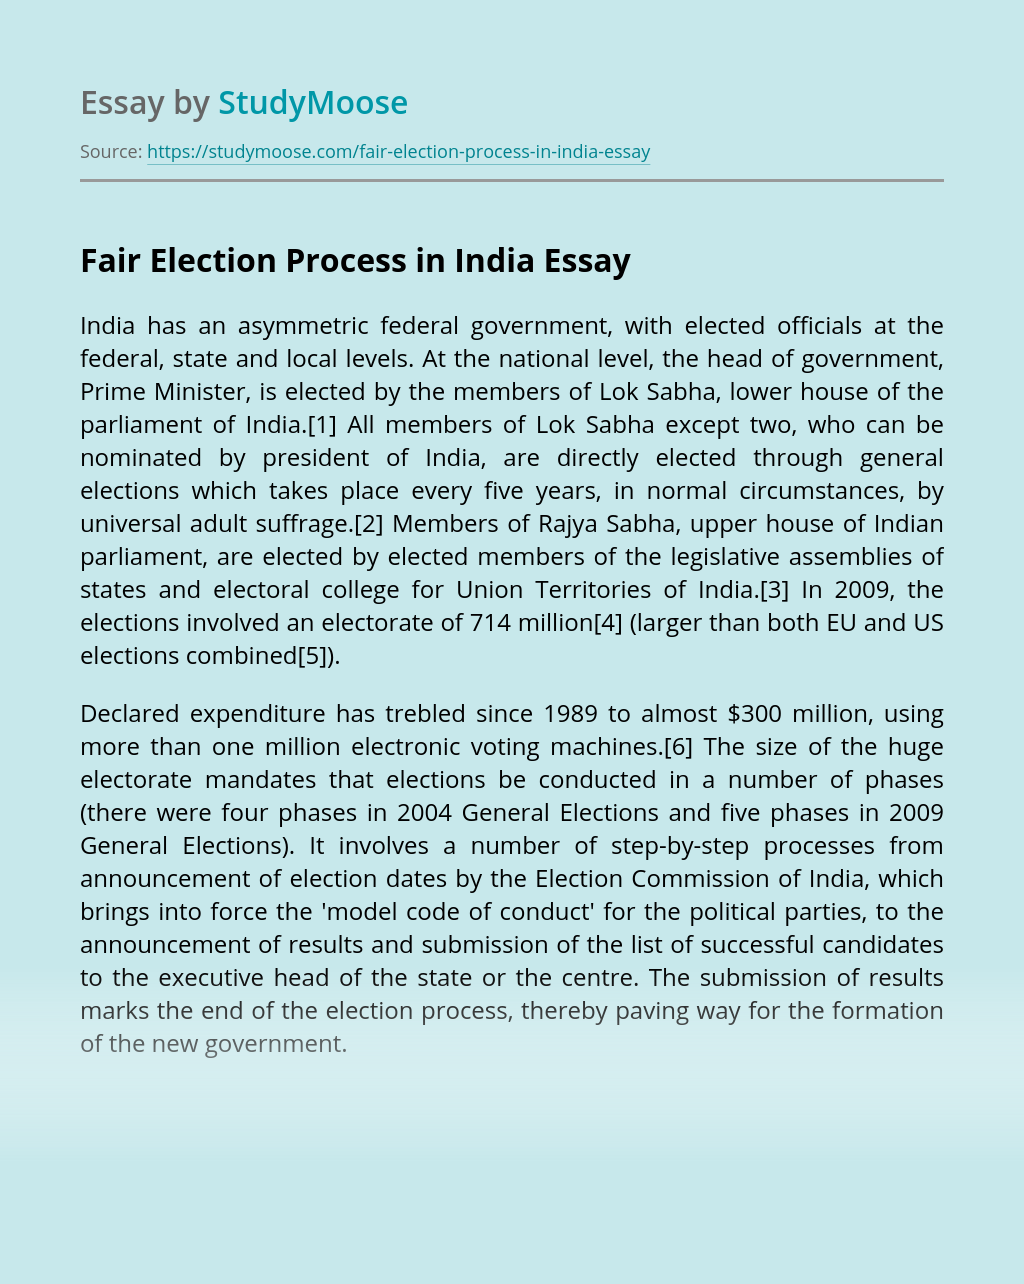 Fair Election Process in India